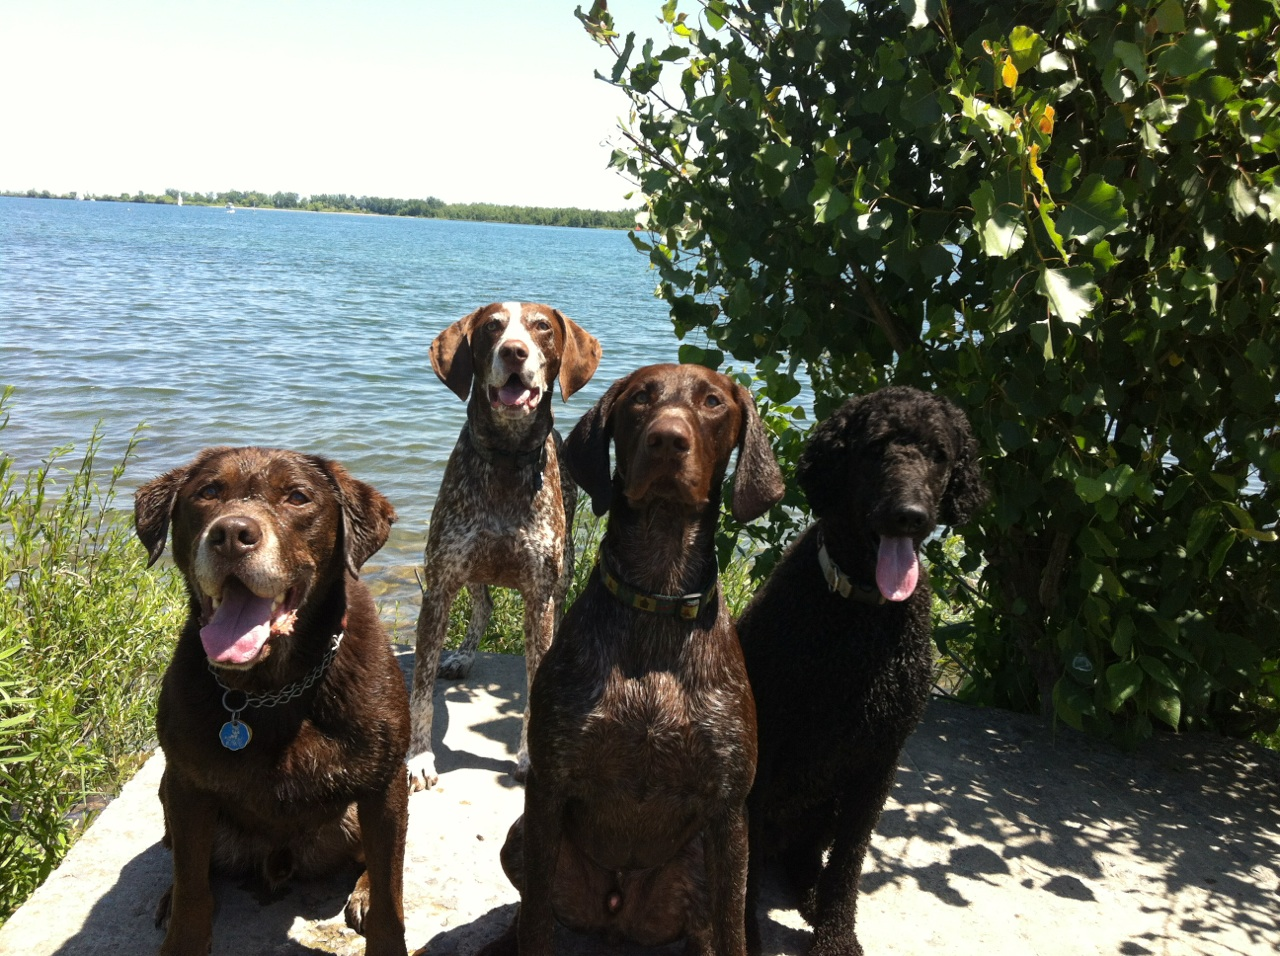 C harlie and his buddies at the beach...